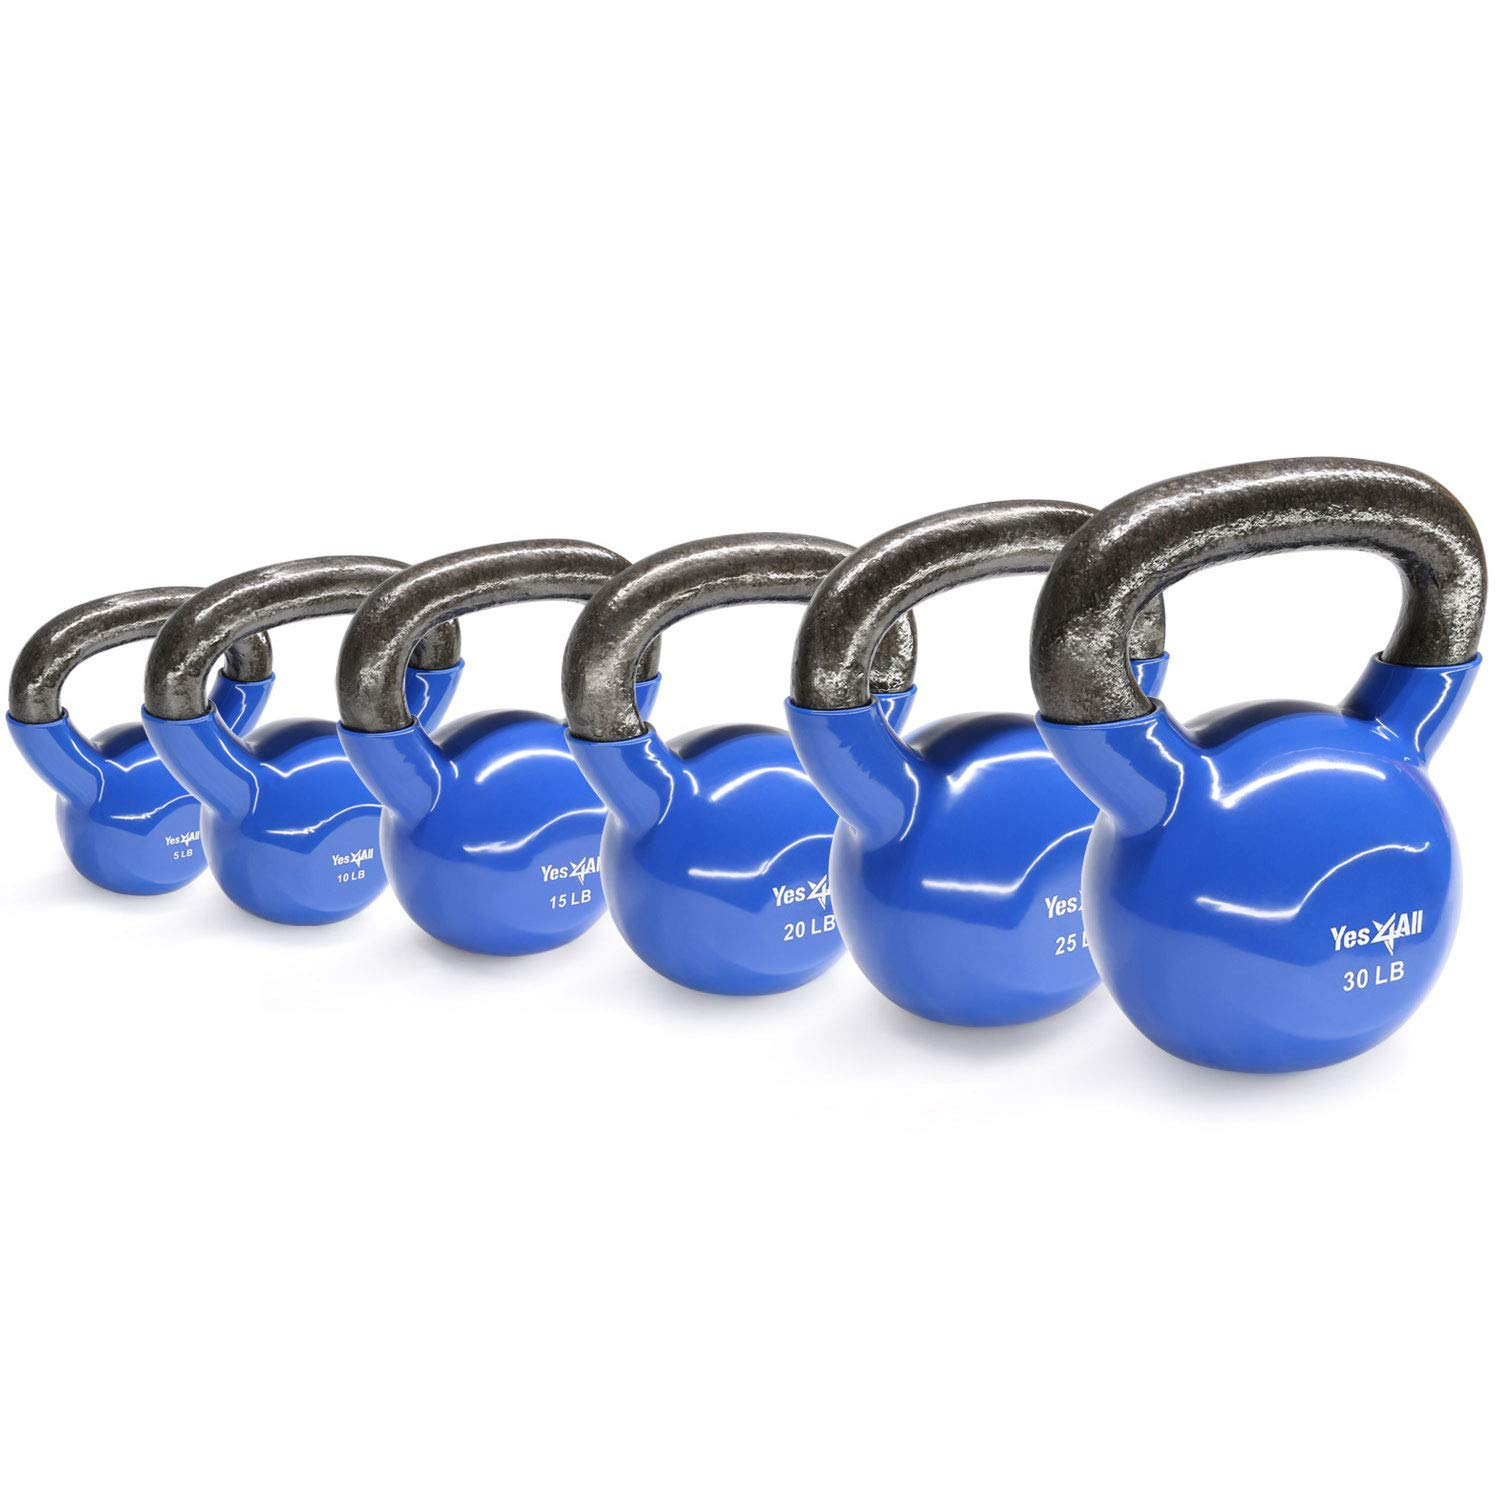 Yes4All Combo Vinyl Coated Kettlebell Weight Sets – Great for Full Body Workout and Strength Training – Vinyl Kettlebells 5 10 15 20 25 30 lbs by Yes4All (Image #3)